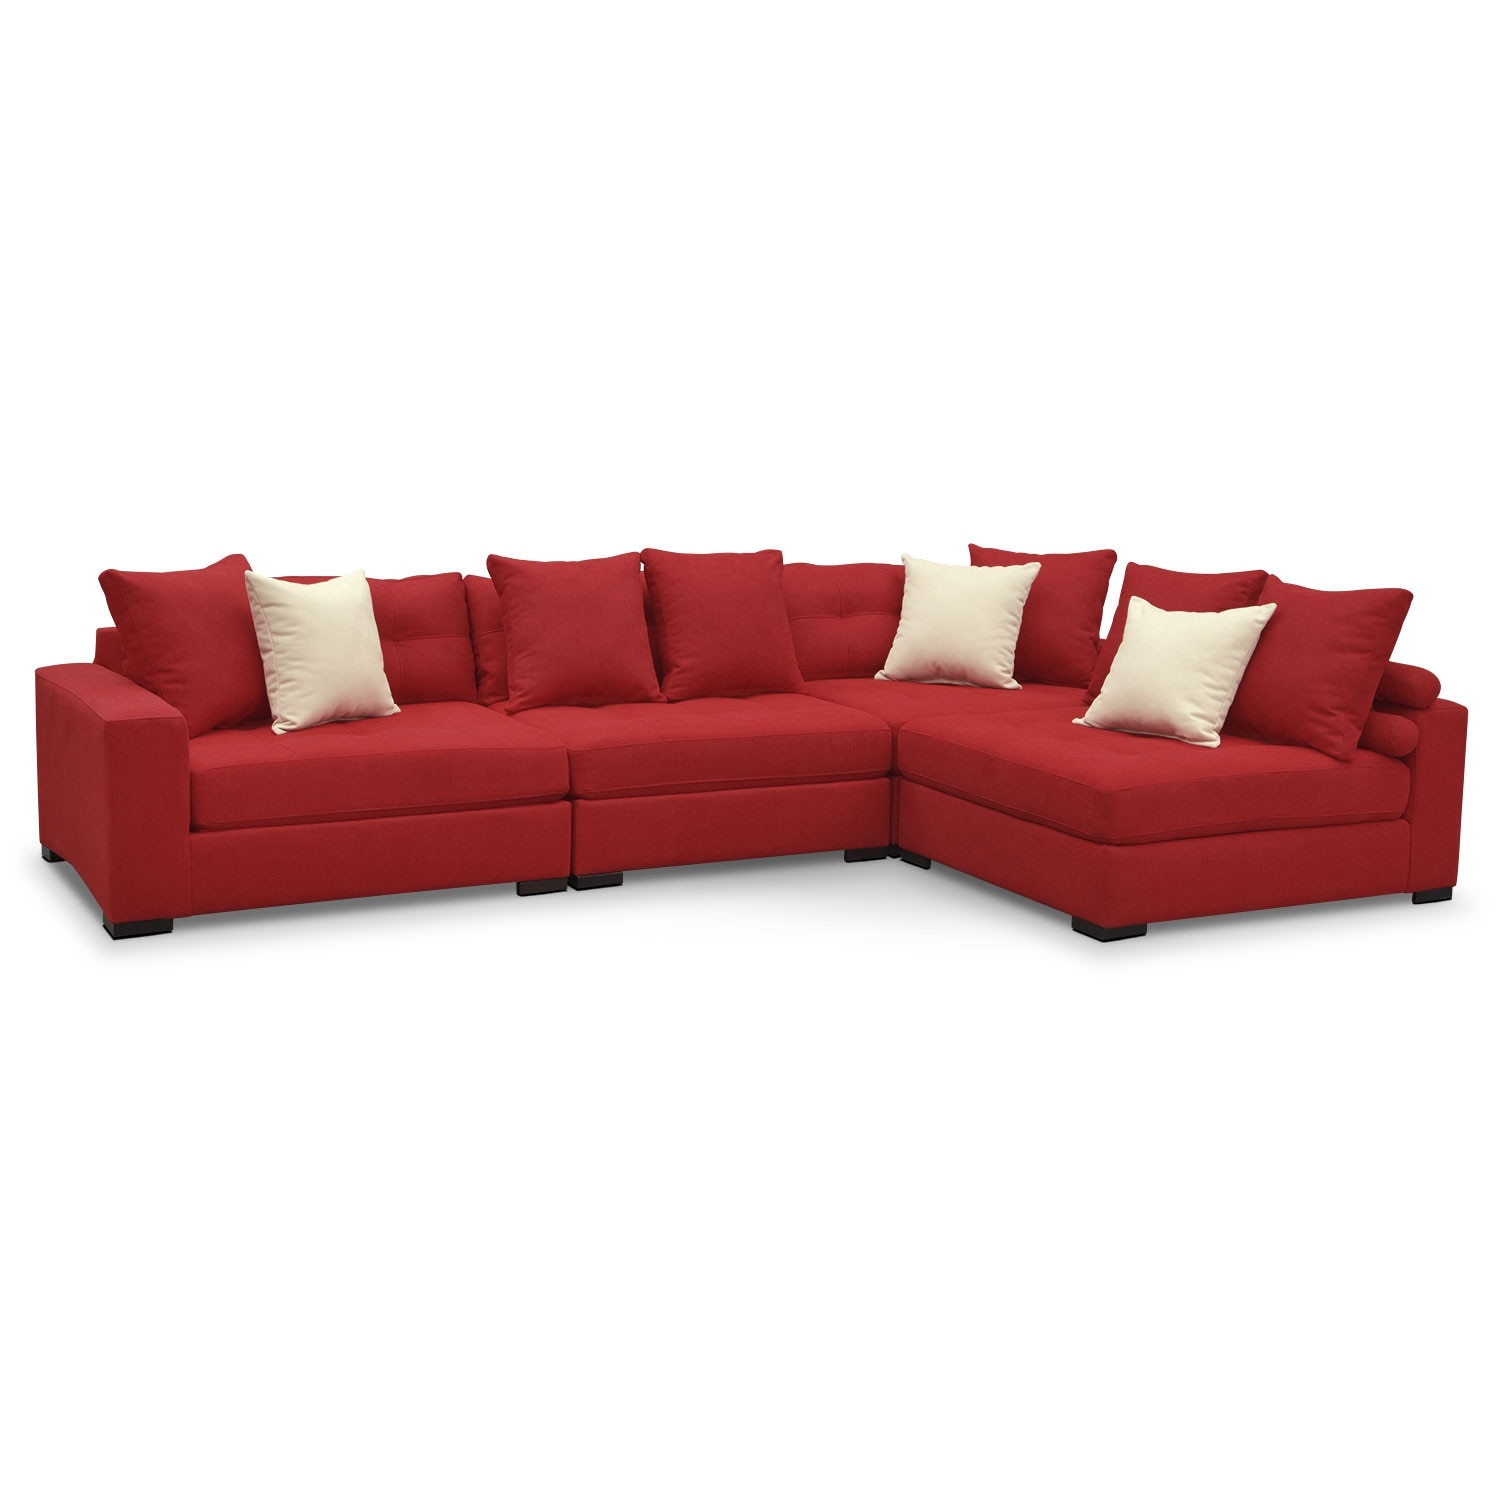 The Venti Collection Red Value City Furniture